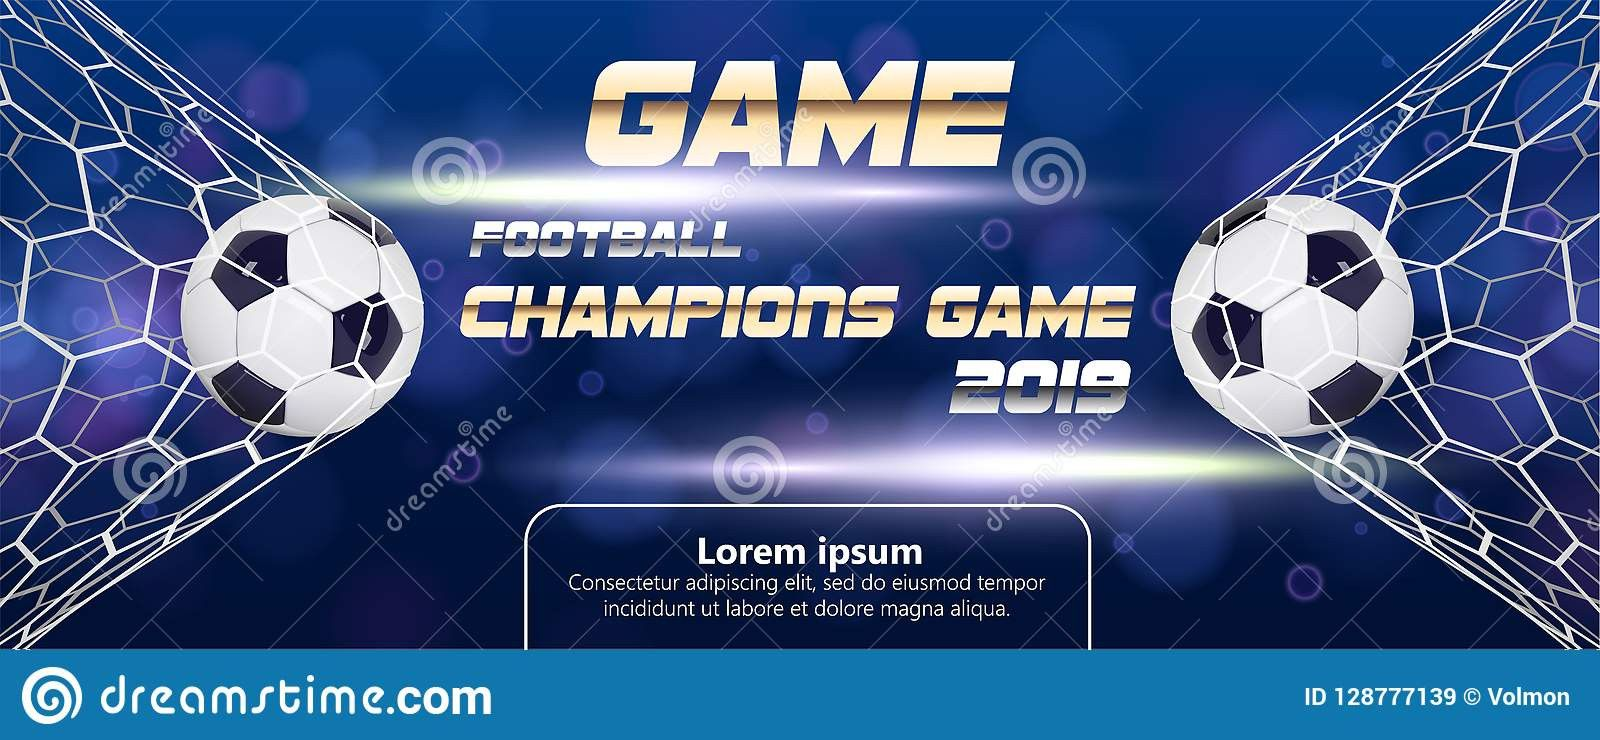 Football Tournament Poster Template Free Unique Soccer Football Banner With 3d Ball Blue Background In 2020 Poster Template Free Poster Template Poster Template Design